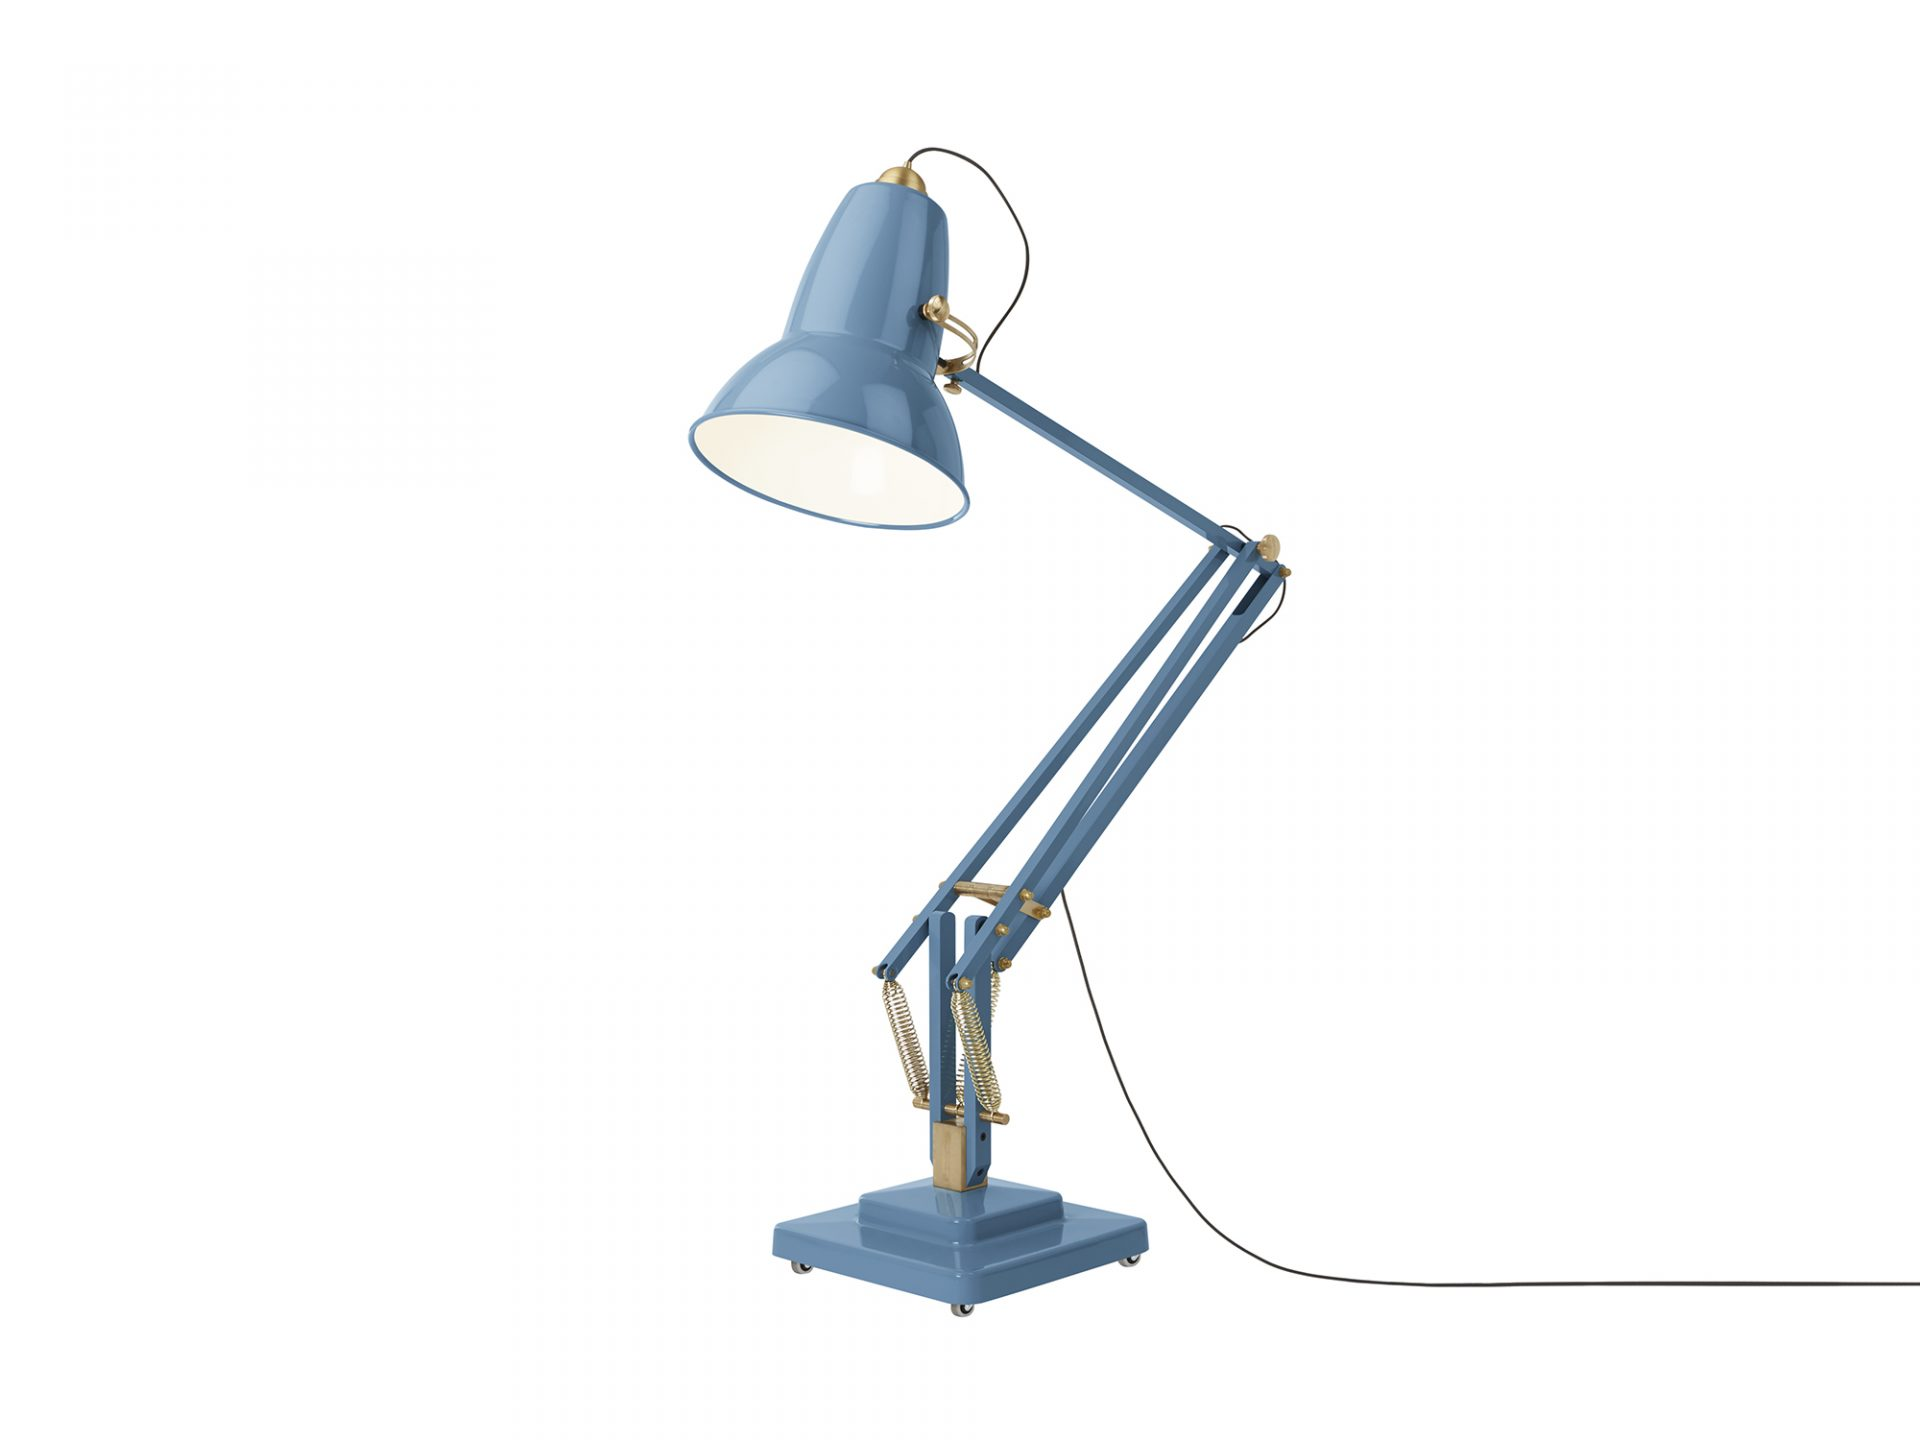 Lampadaire original 1227 giant brass anglepoise - Luminaire industriel la giant collection par anglepoise ...